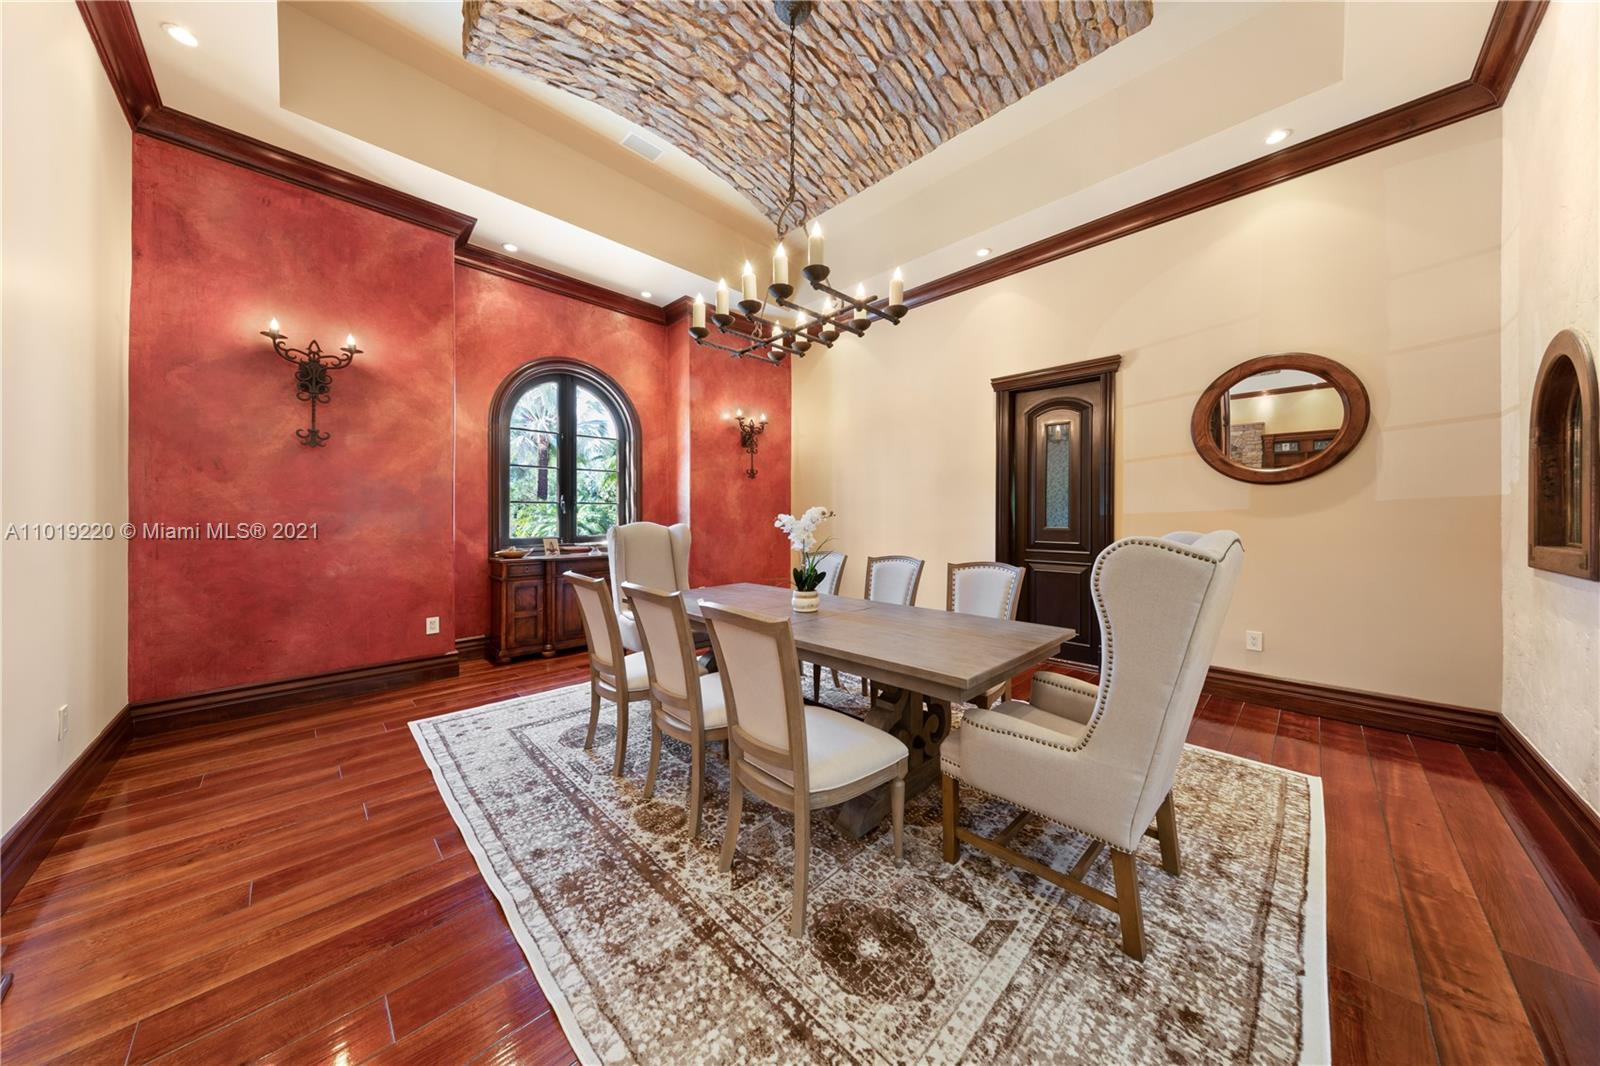 FORMAL DINING WITH CUSTOM IRON OPENS TO BUTLERS PANTRY THEN TO MAIN KITCHEN